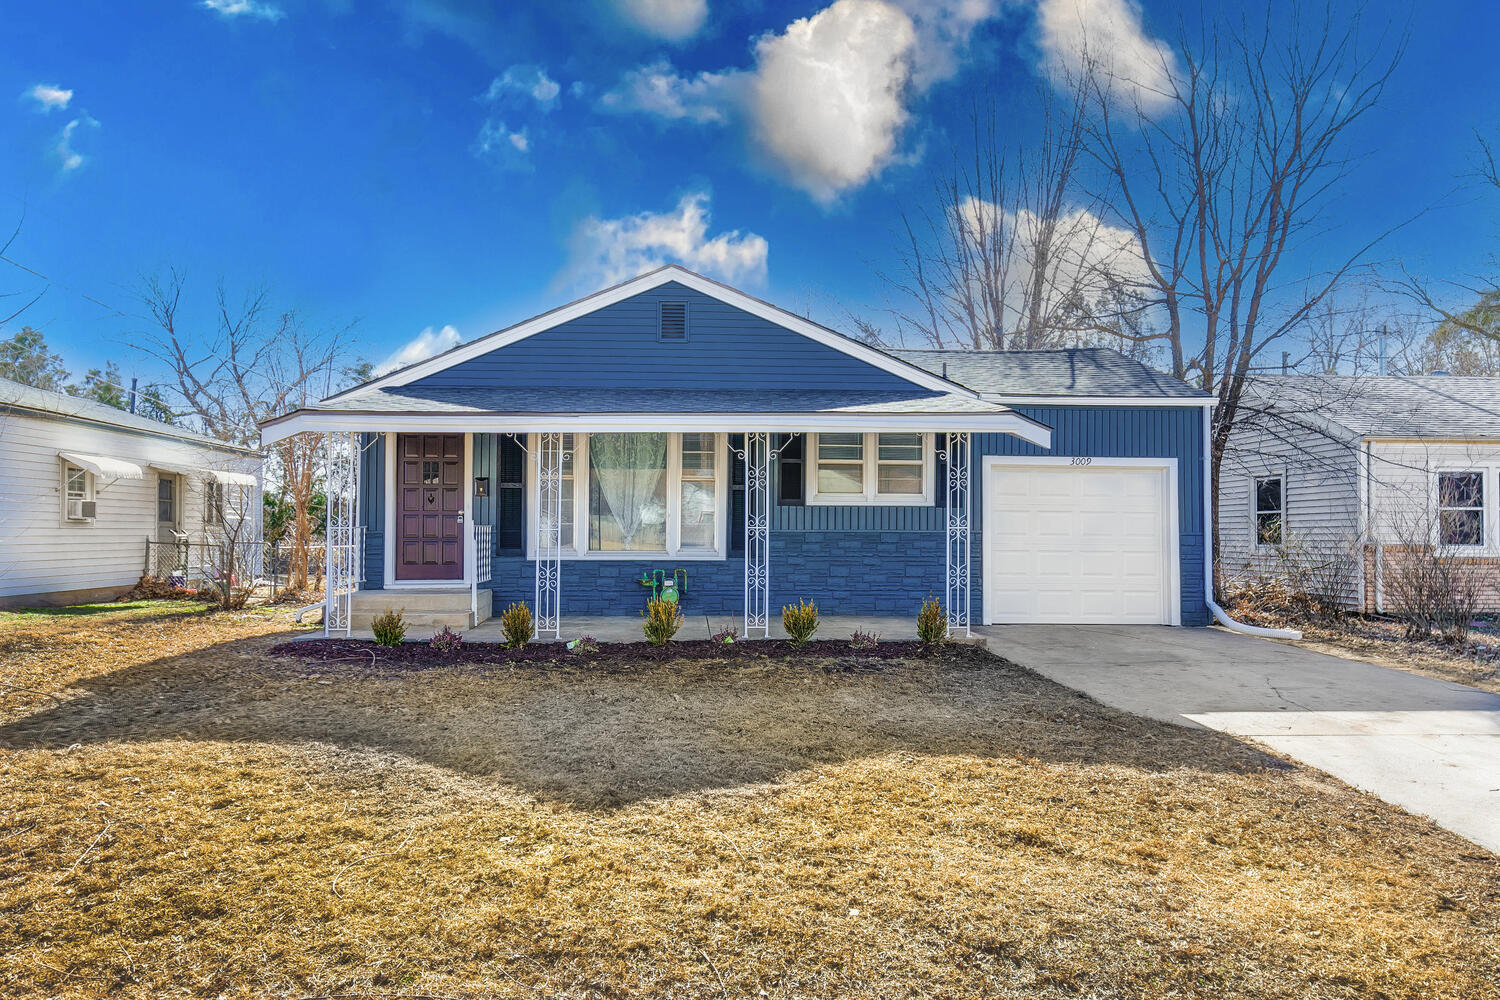 Wichita Affordable Homes For Sale House Listings Pro Home Buyer